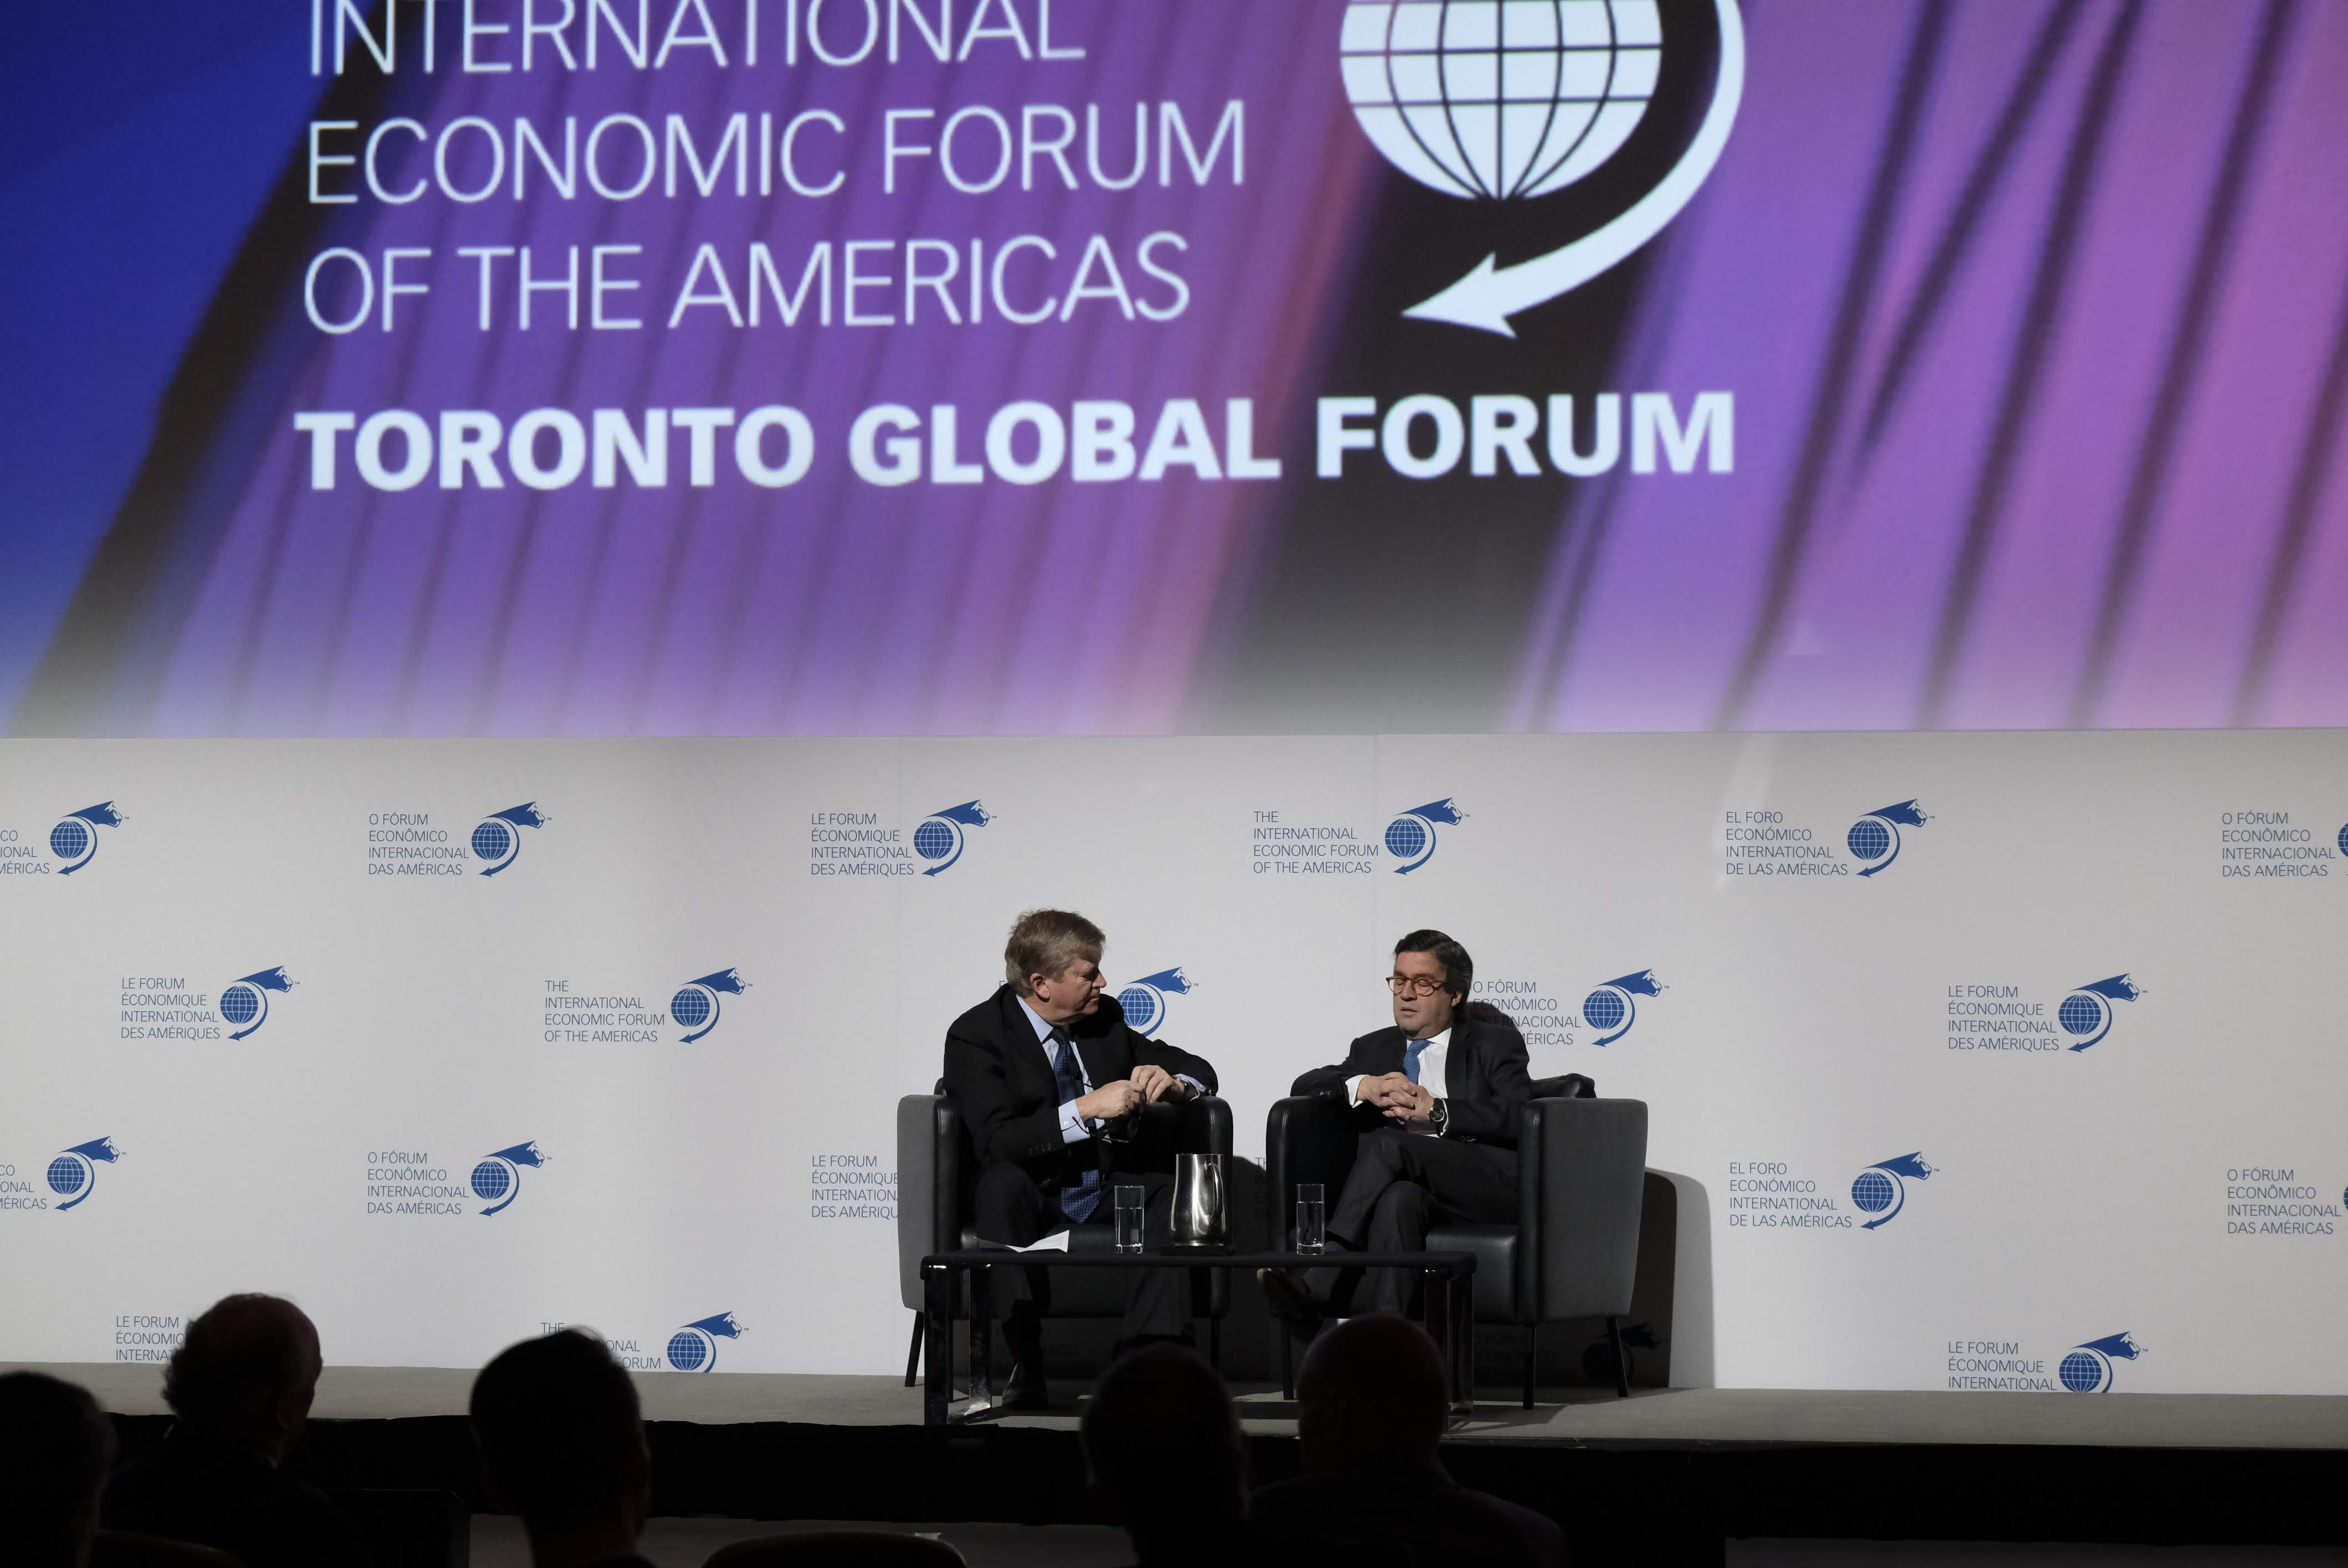 Fireside Chat - Luis Alberto Moreno, President, Inter-American Development Bank (IDB) interviewed by Tom Clark, Chair, Global Public Affairs